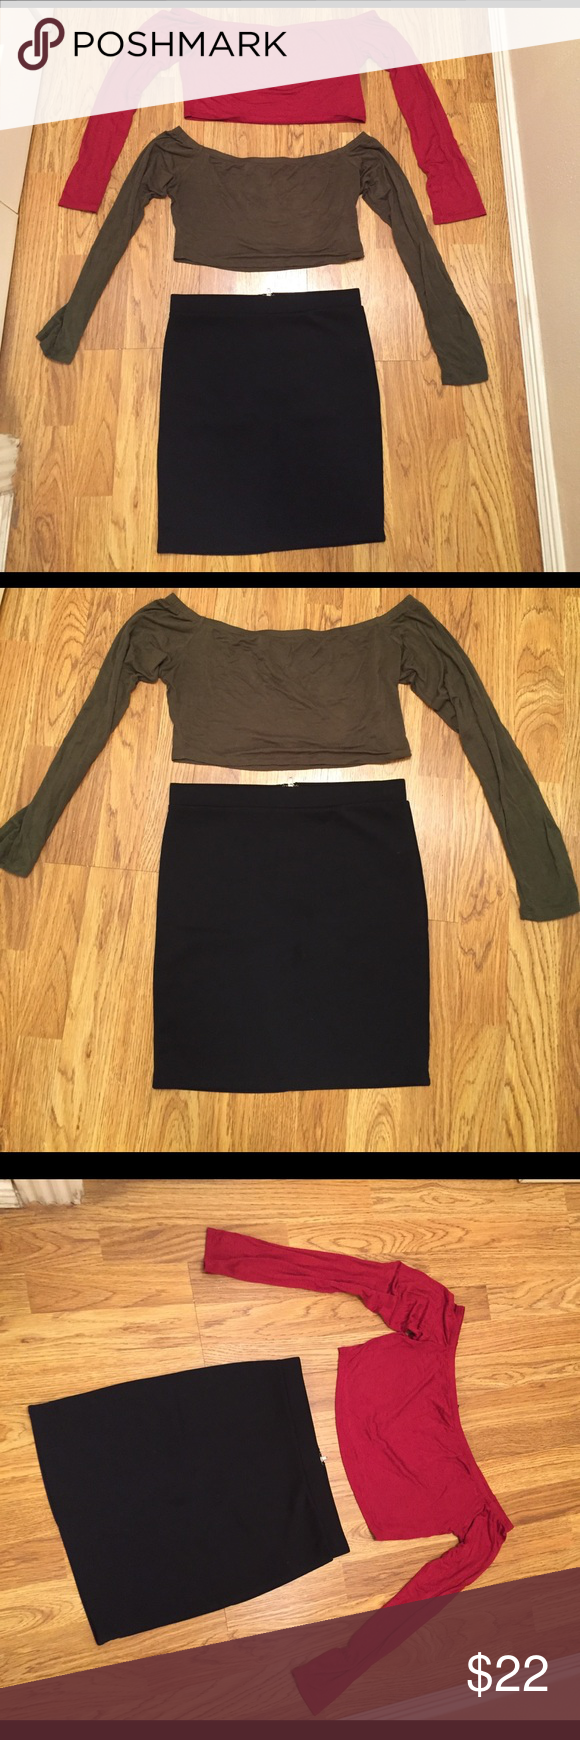 Bundle 2 Cute outfits. Bundle Forever21 M skirt w/zipper in the back and 2 crop tops Forever 21 Skirts Mini